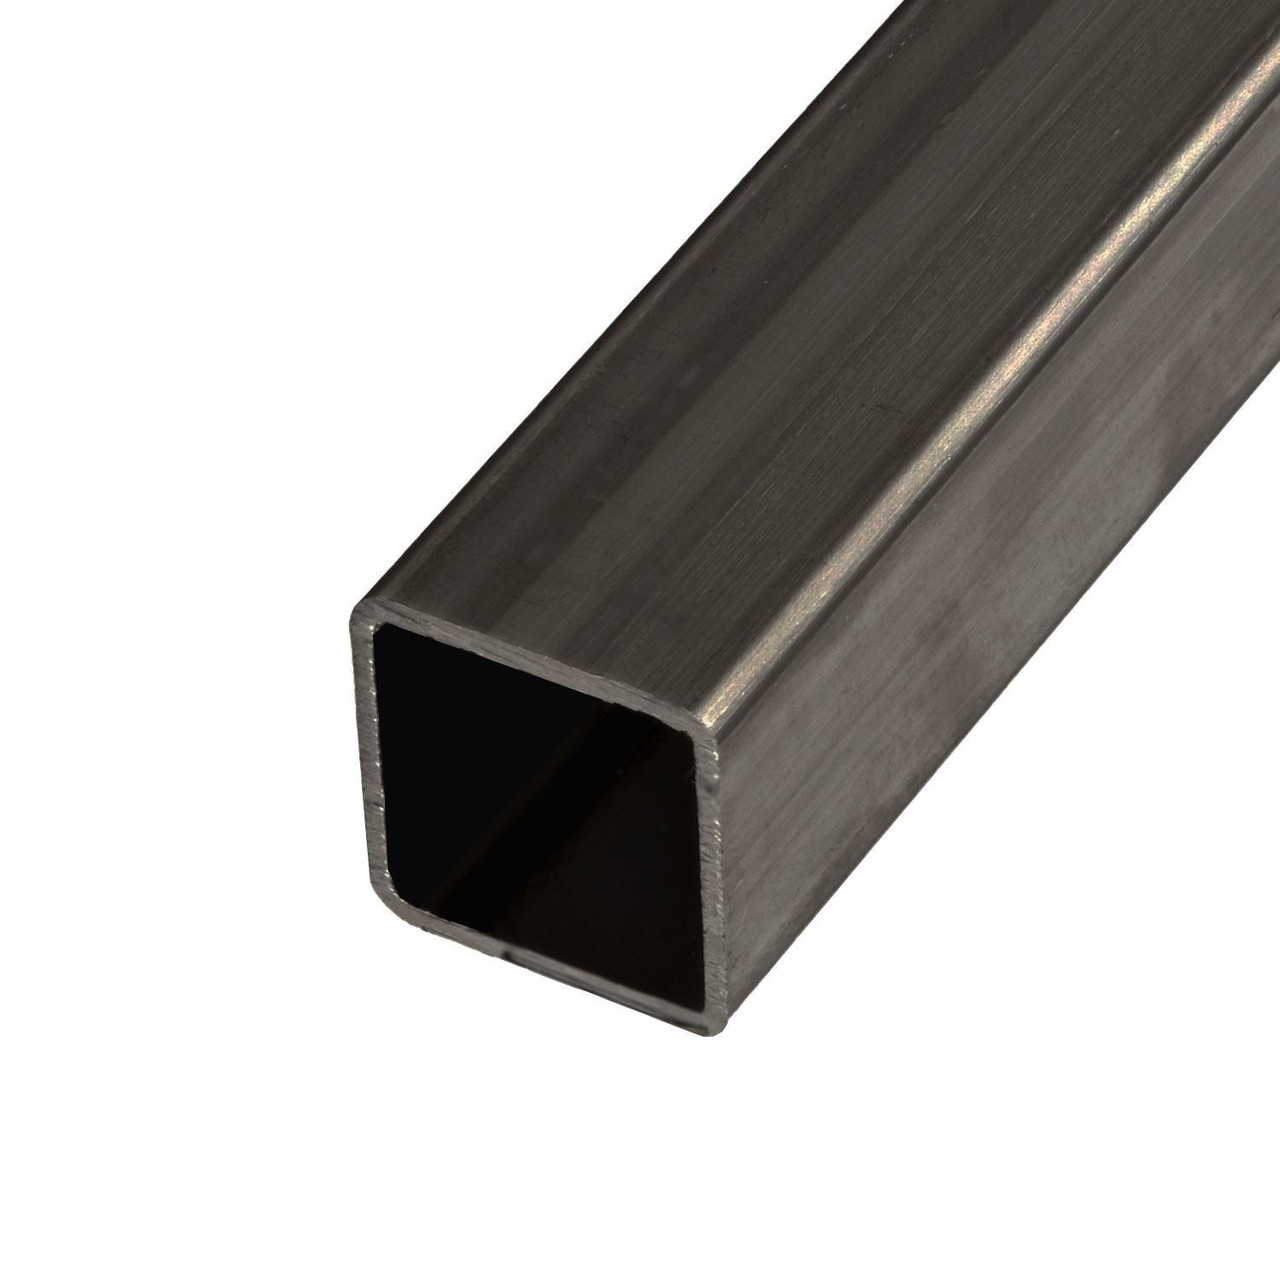 """1.5"""" x 1.5"""" x 0.083"""" x 24 inches, Steel Square Tube"""